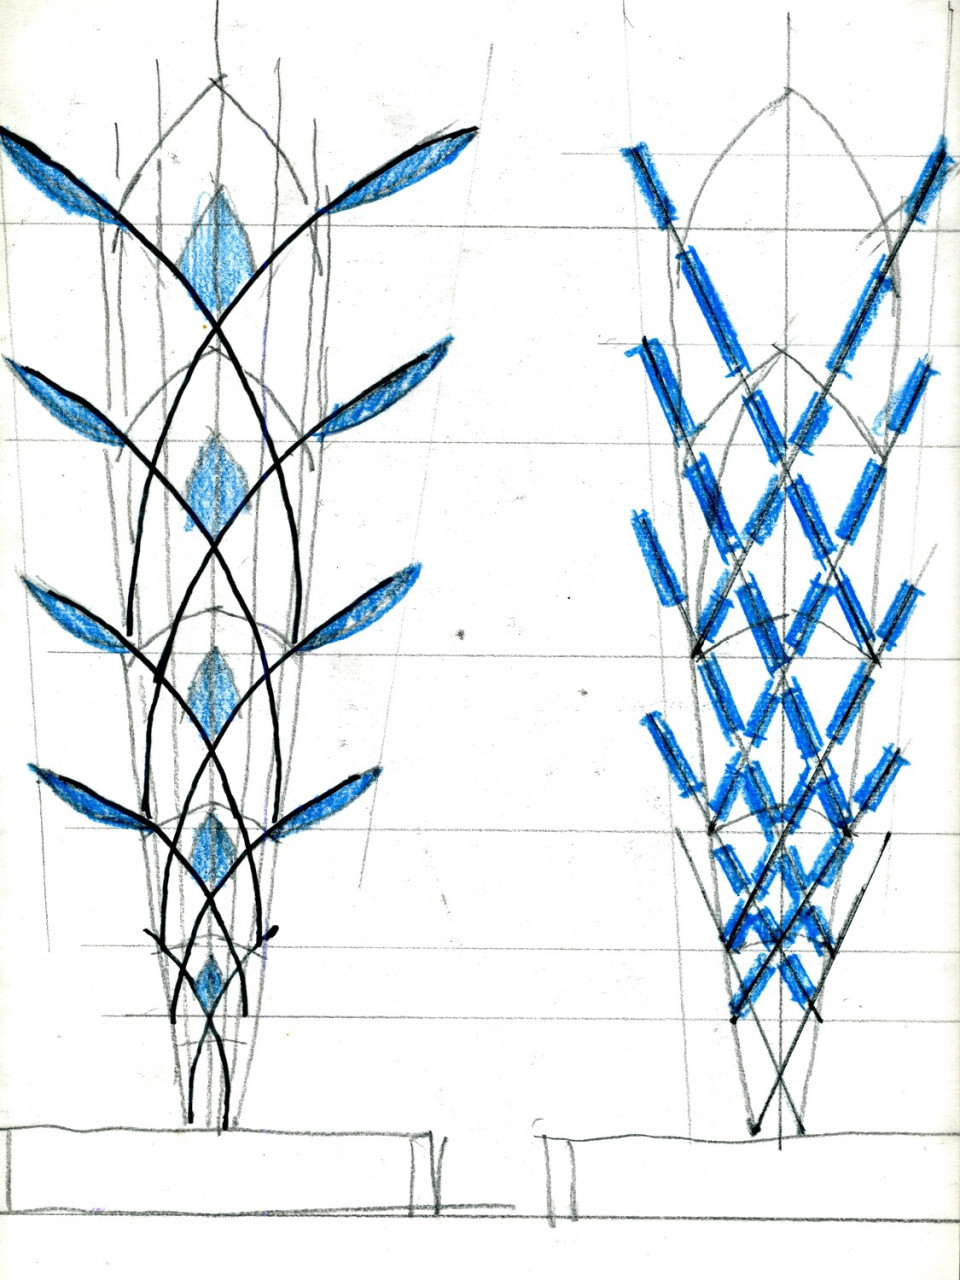 Ed Carpenter's initial sketches of Mesaflora light rail sculpture. The blossoming of the City of Mesa itself is implicit in this metaphor. / image 8